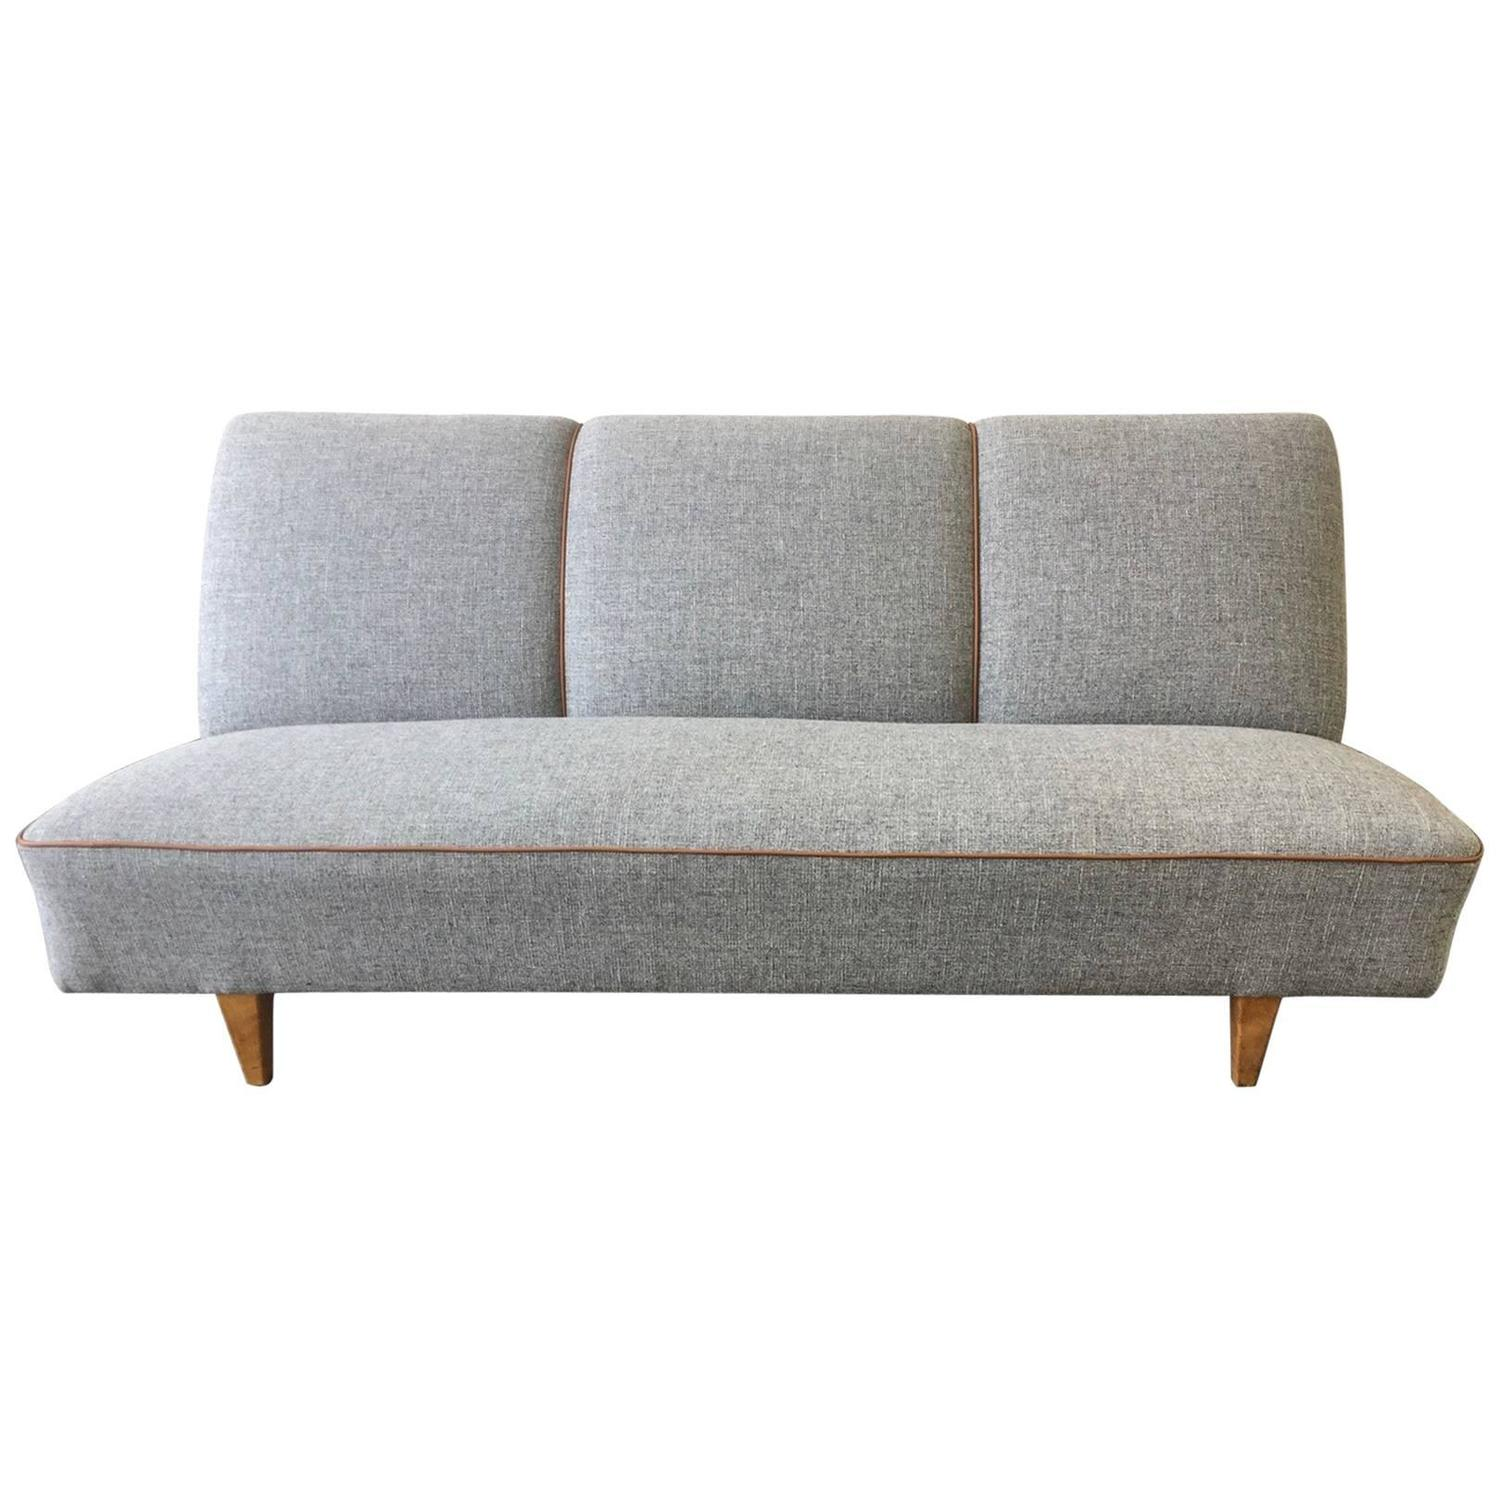 Very Rare Bruno Mathsson Sofa in Perfect Condition For Sale at 1stdibs